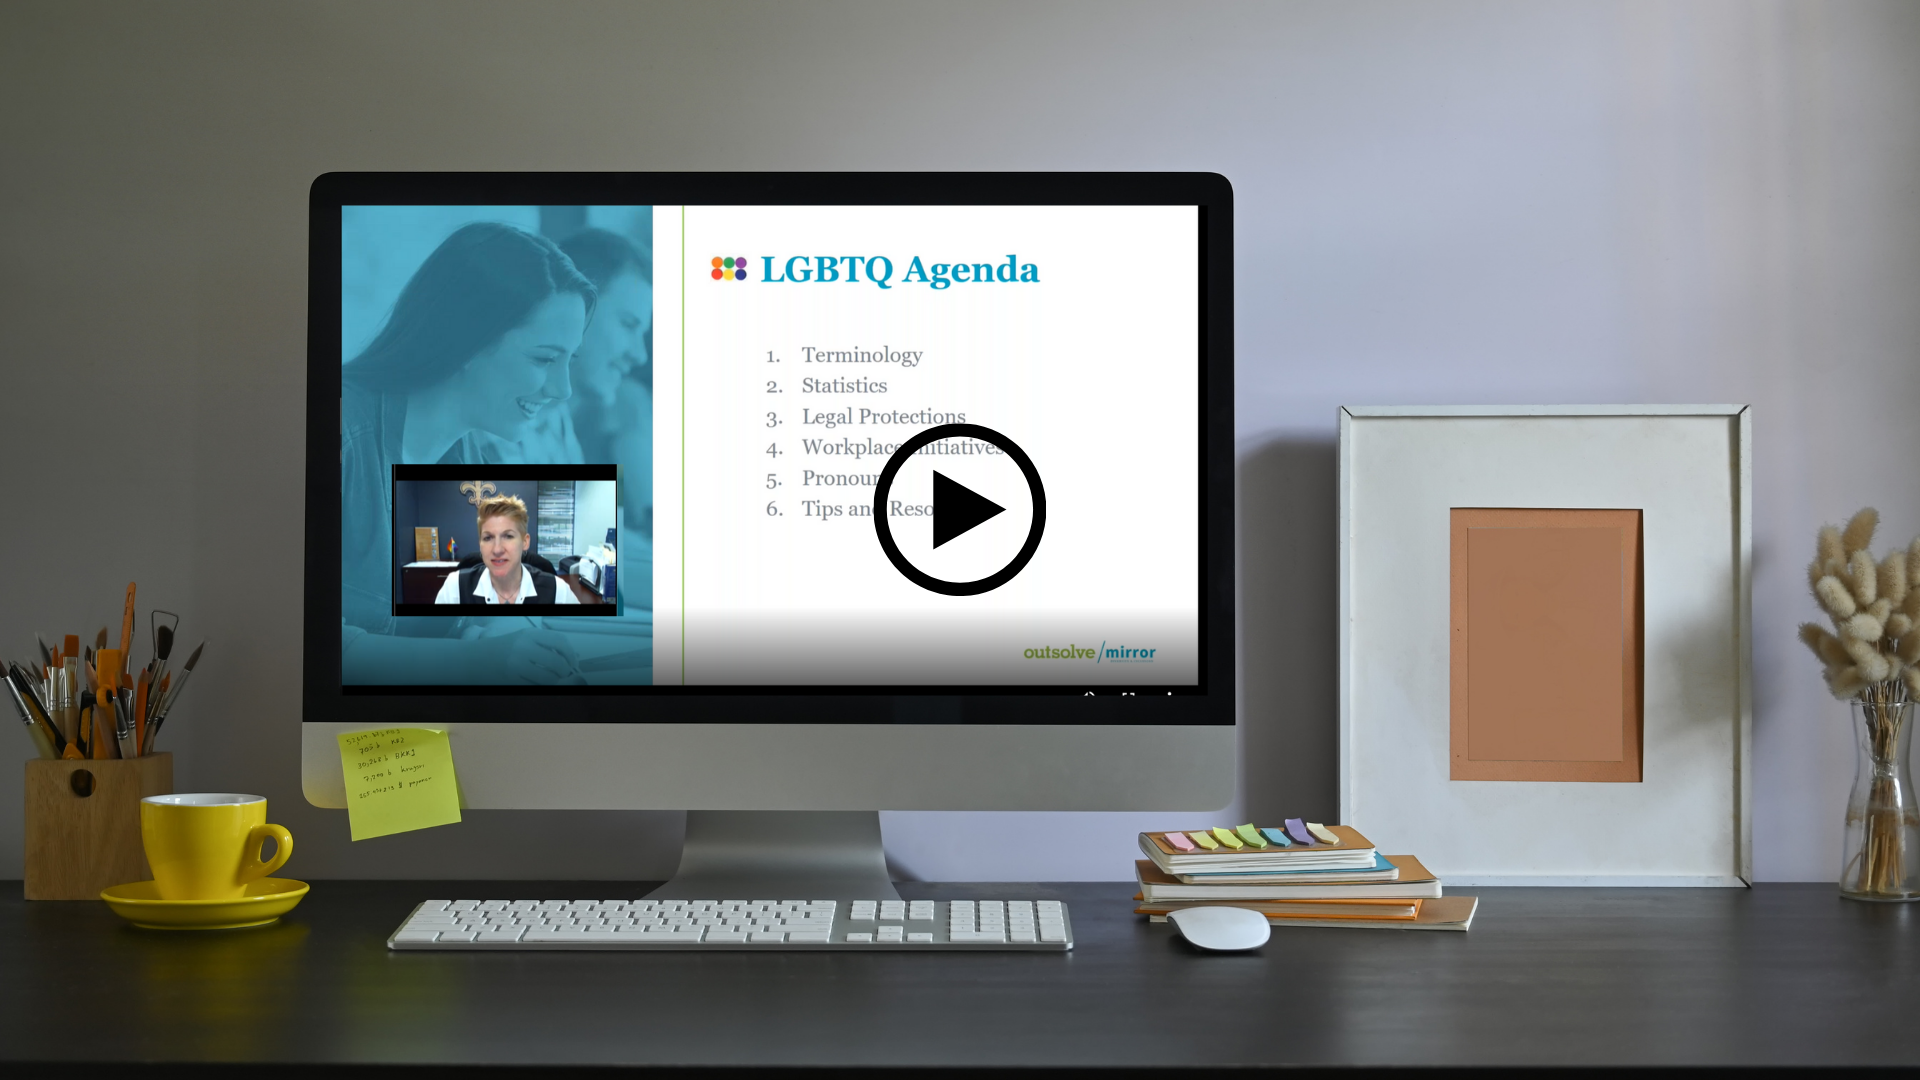 Free Video on LGBTQ in the Workplace